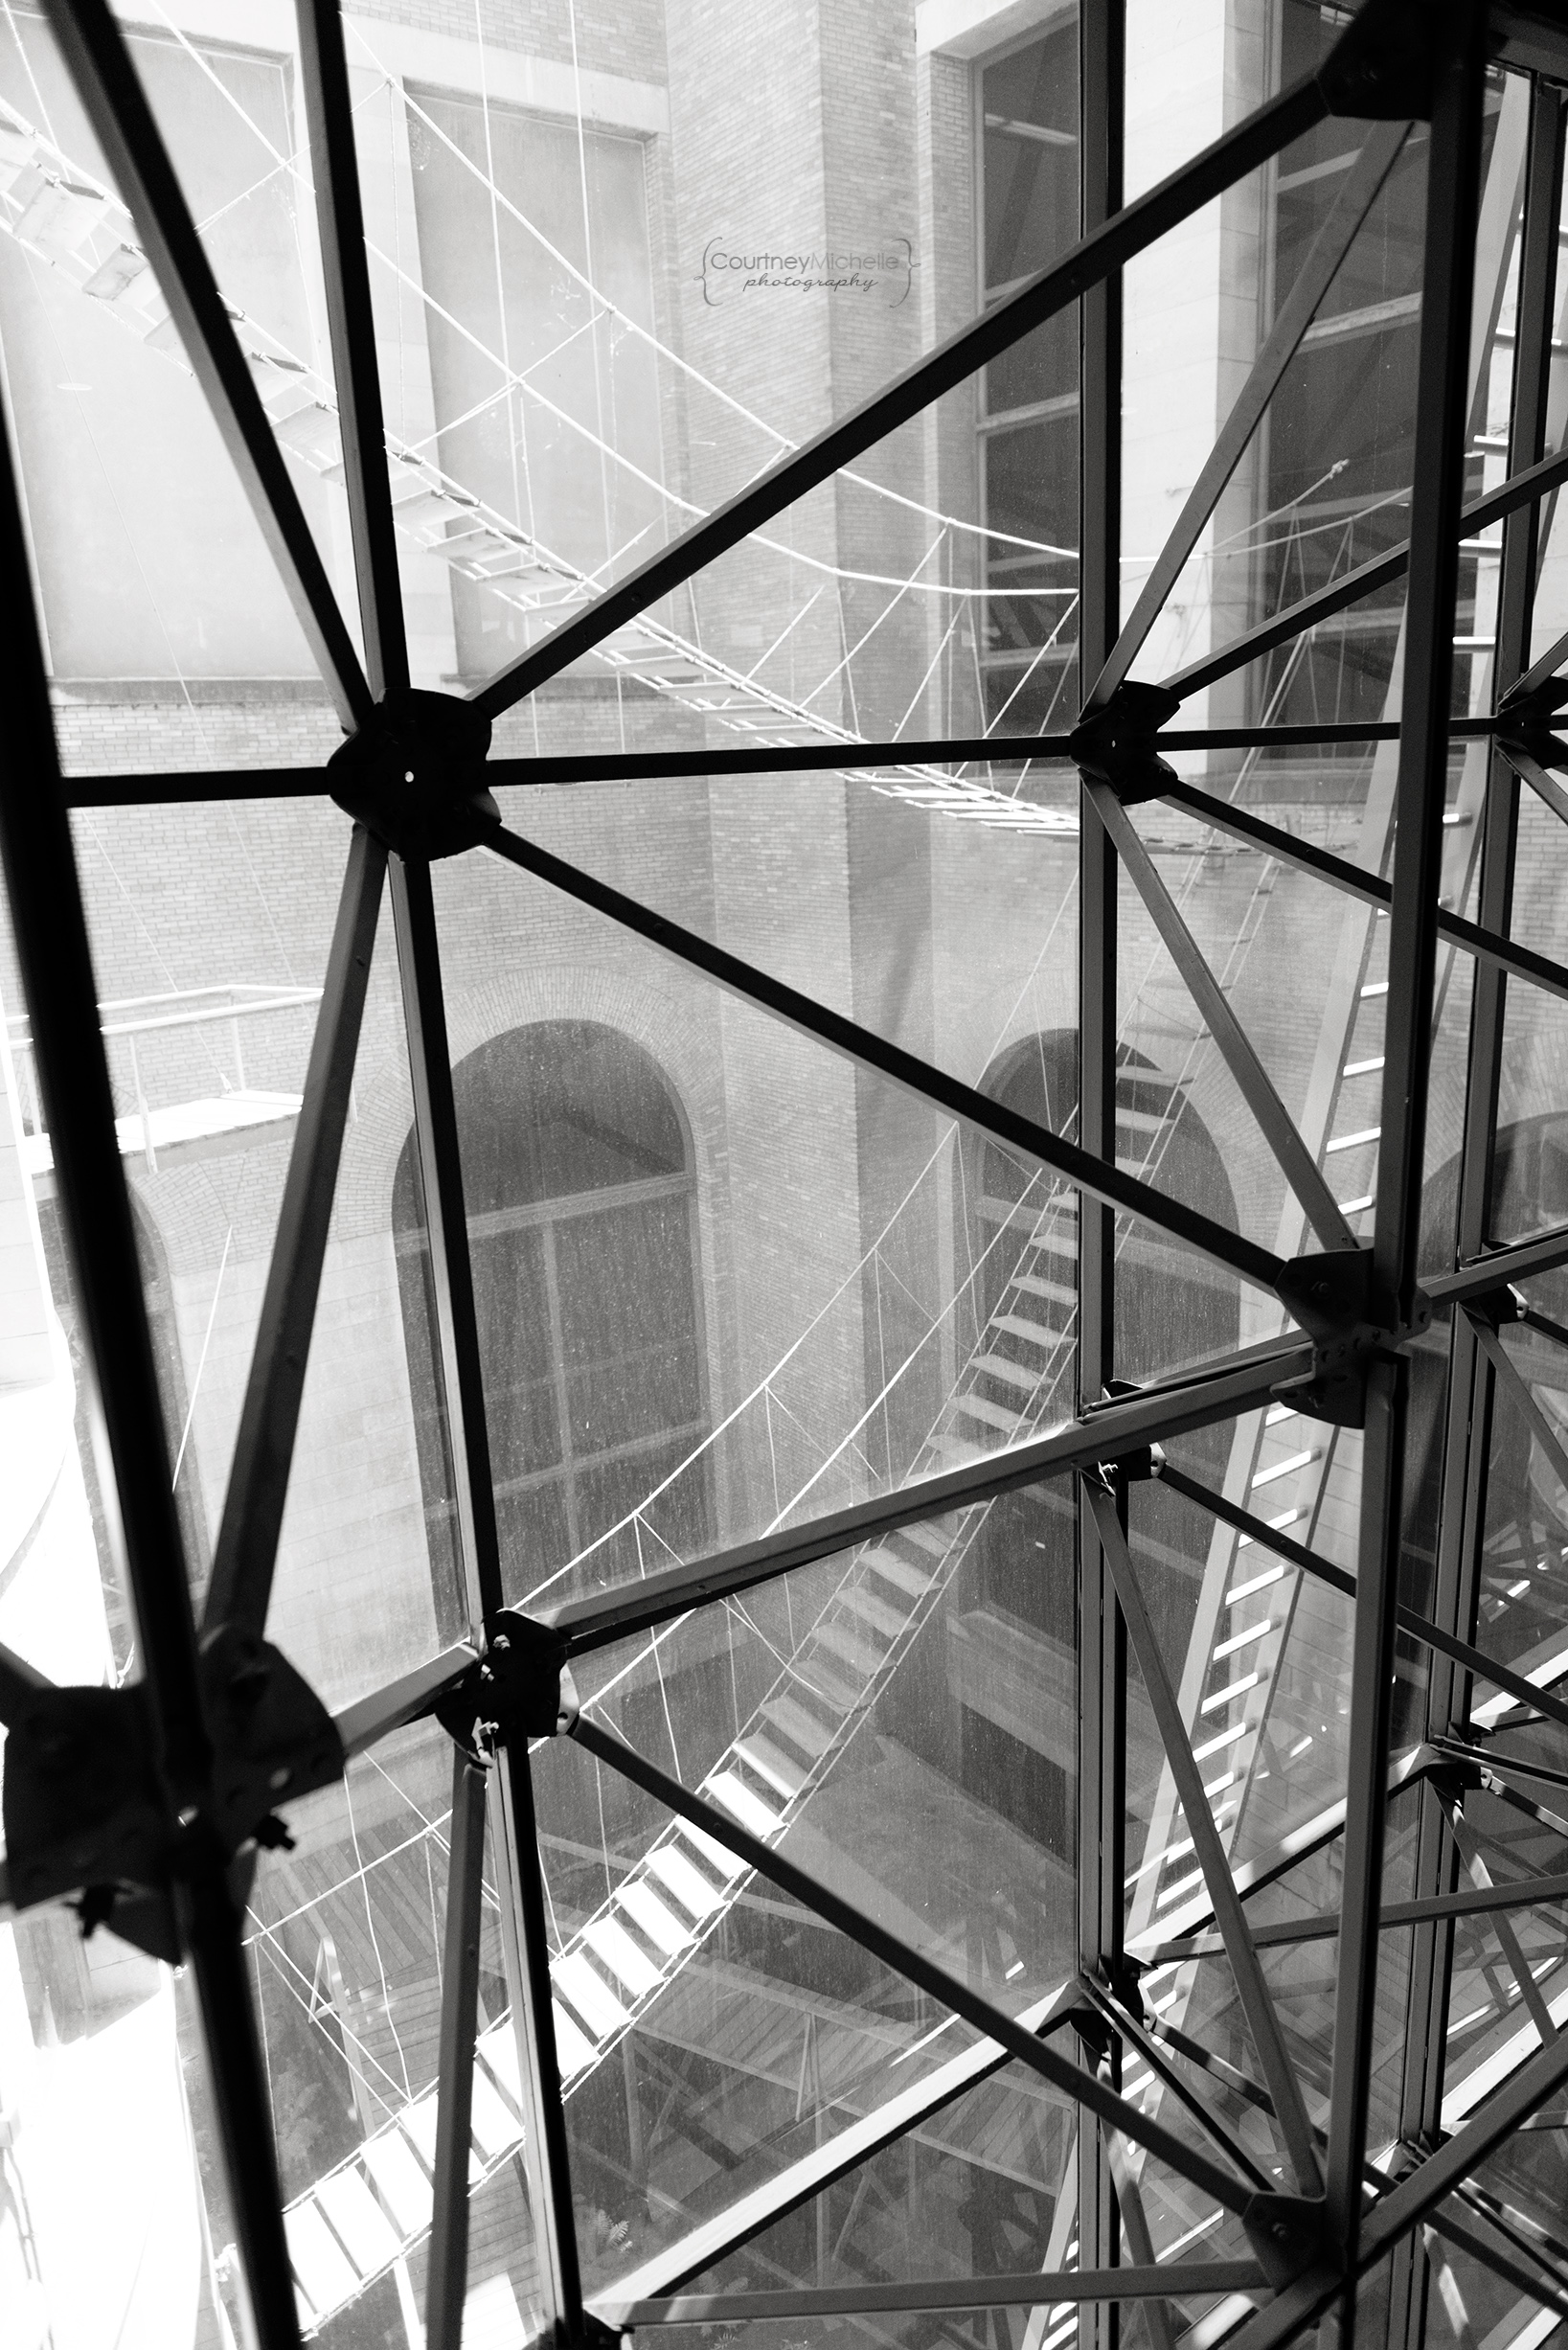 chicago_cultural_center_lines_chicago_street_photography_courtney_laper_photography.jpg